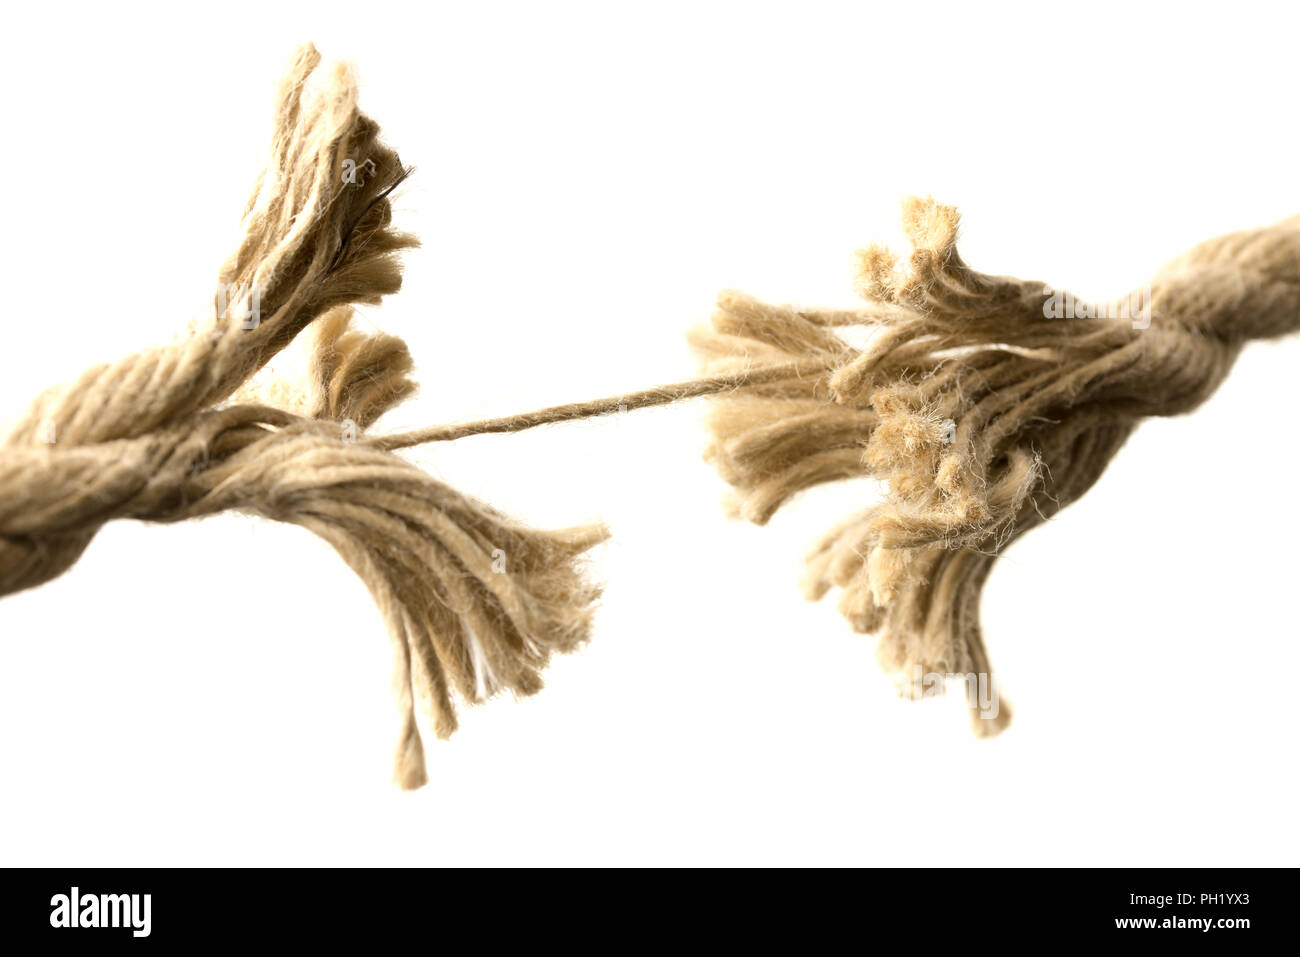 Close-up of a rope splitting apart held together by one last thread, concept of fragility and division, with copy space on white. - Stock Image